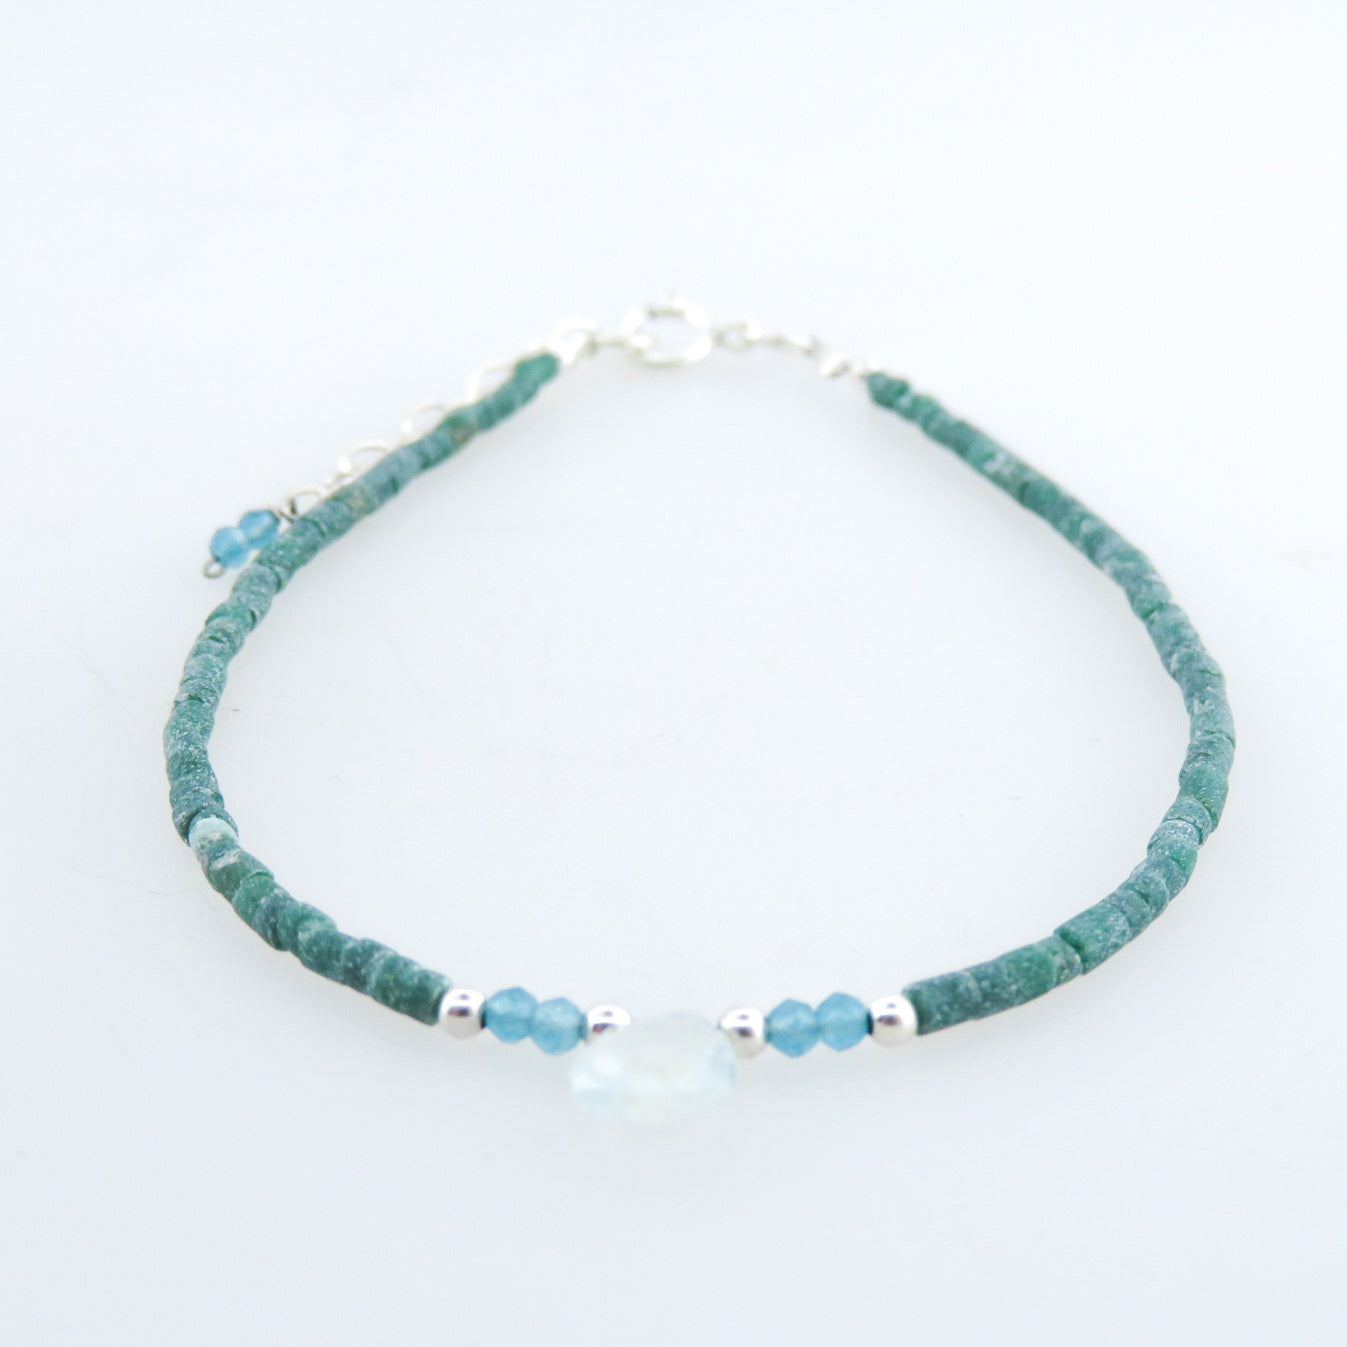 Emerald Bracelet with Blue Topaz and Silver Beads